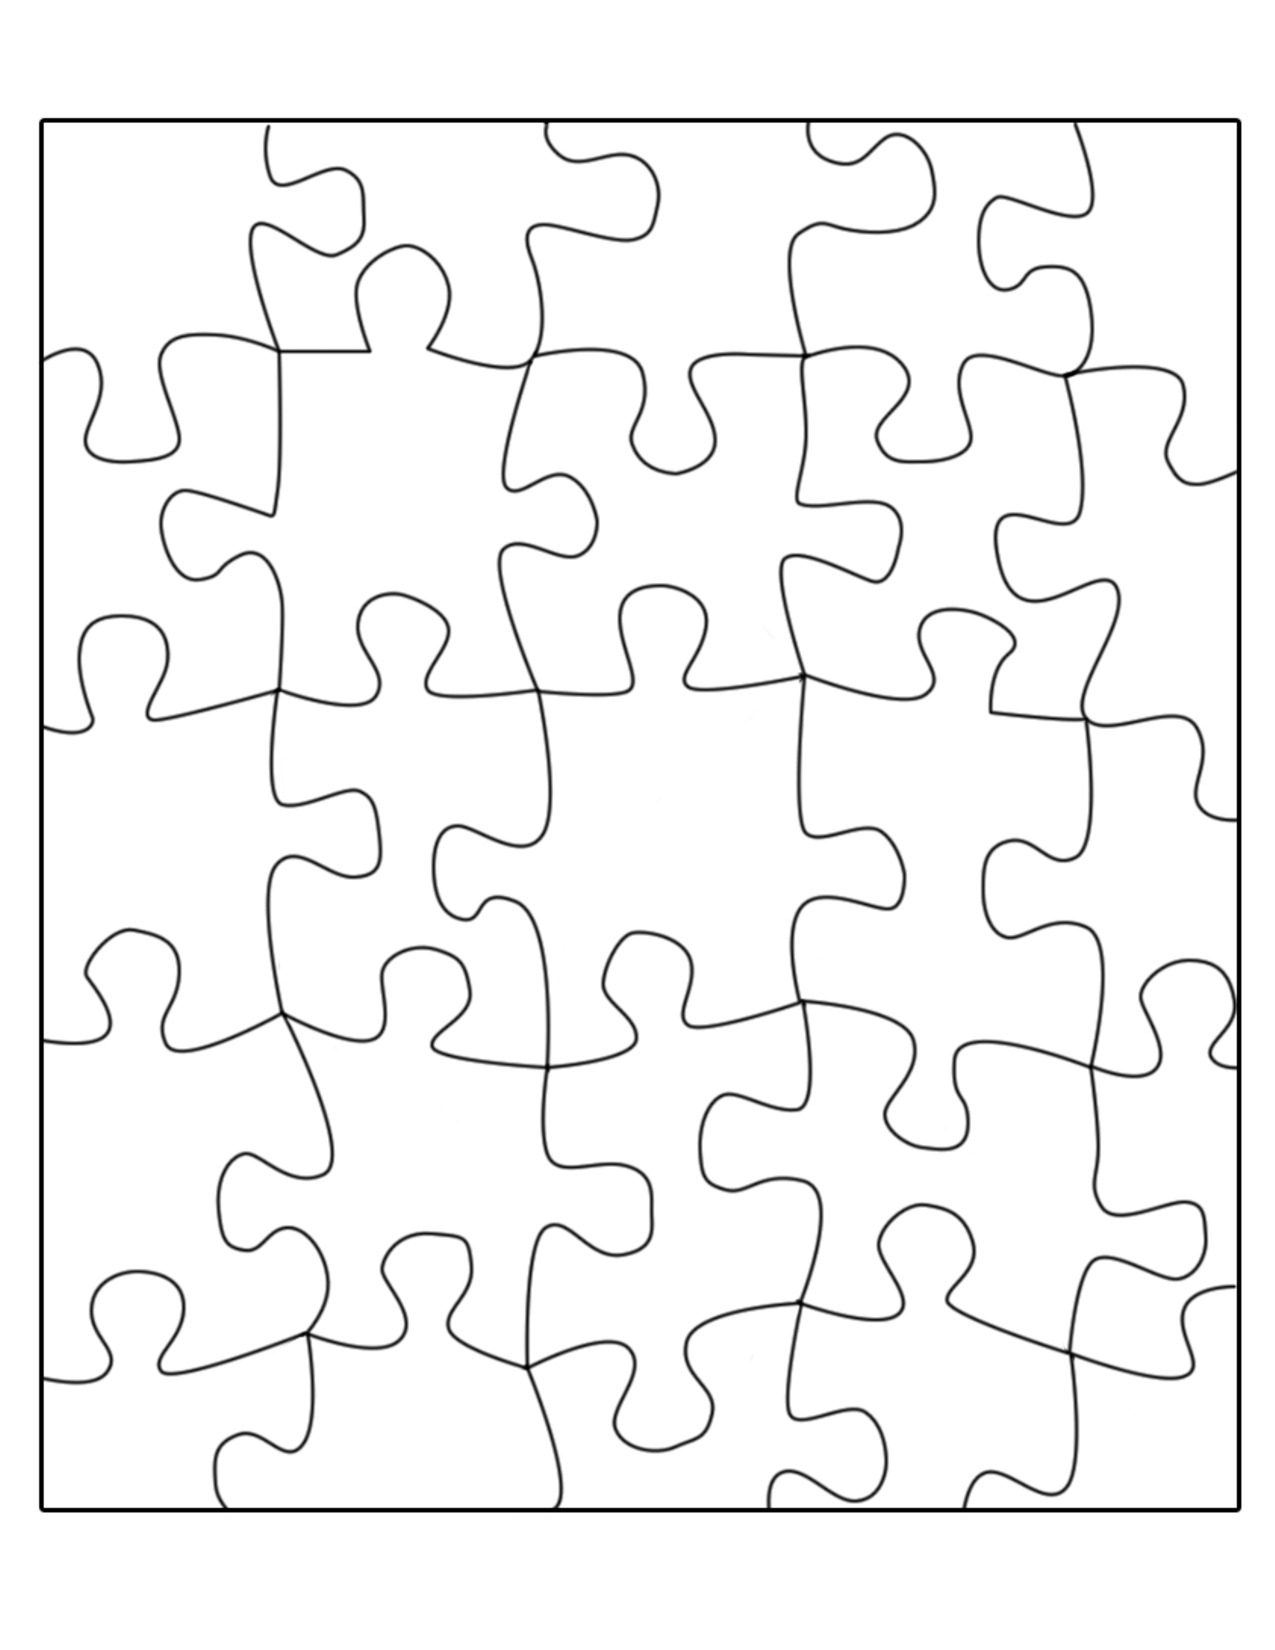 29 Images Of 16-Piece Jigsaw Puzzle Template 8.5X11 | Sofond - Printable Puzzle Template 8.5 X 11